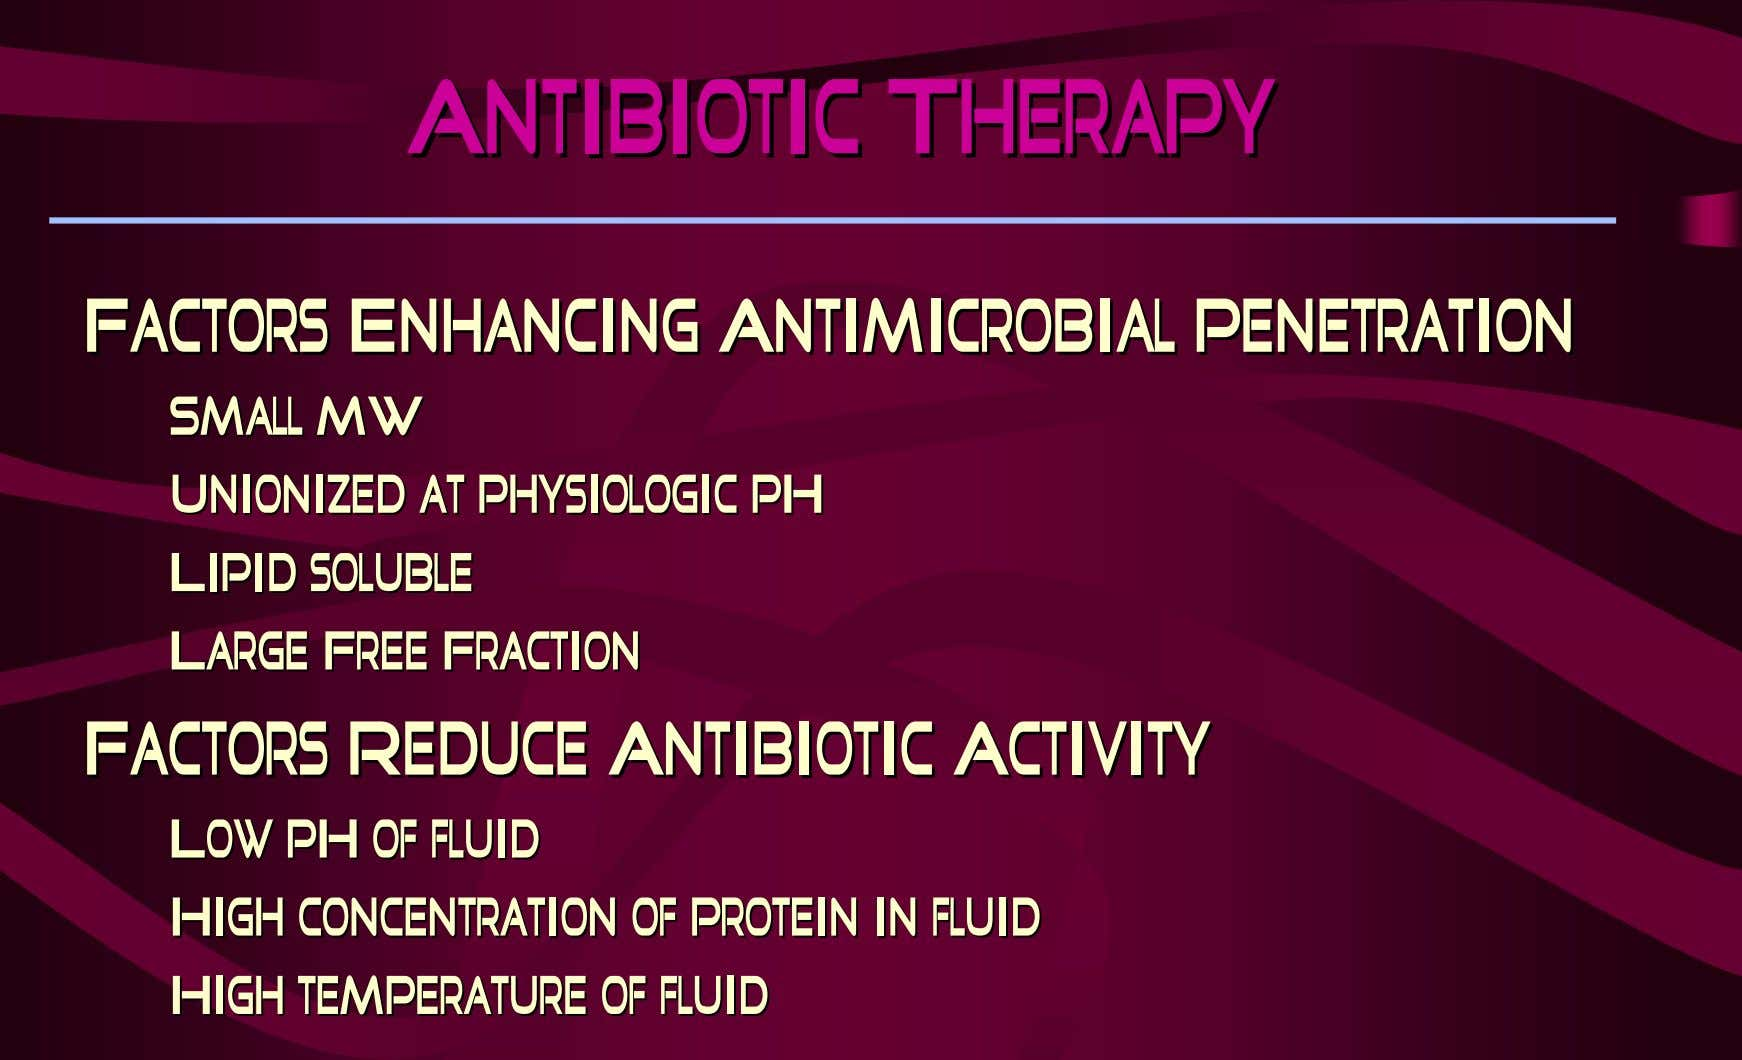 AntibioticAntibiotic TherapyTherapy FactorsFactors EnhancingEnhancing AntimicrobialAntimicrobial PenetrationPenetration